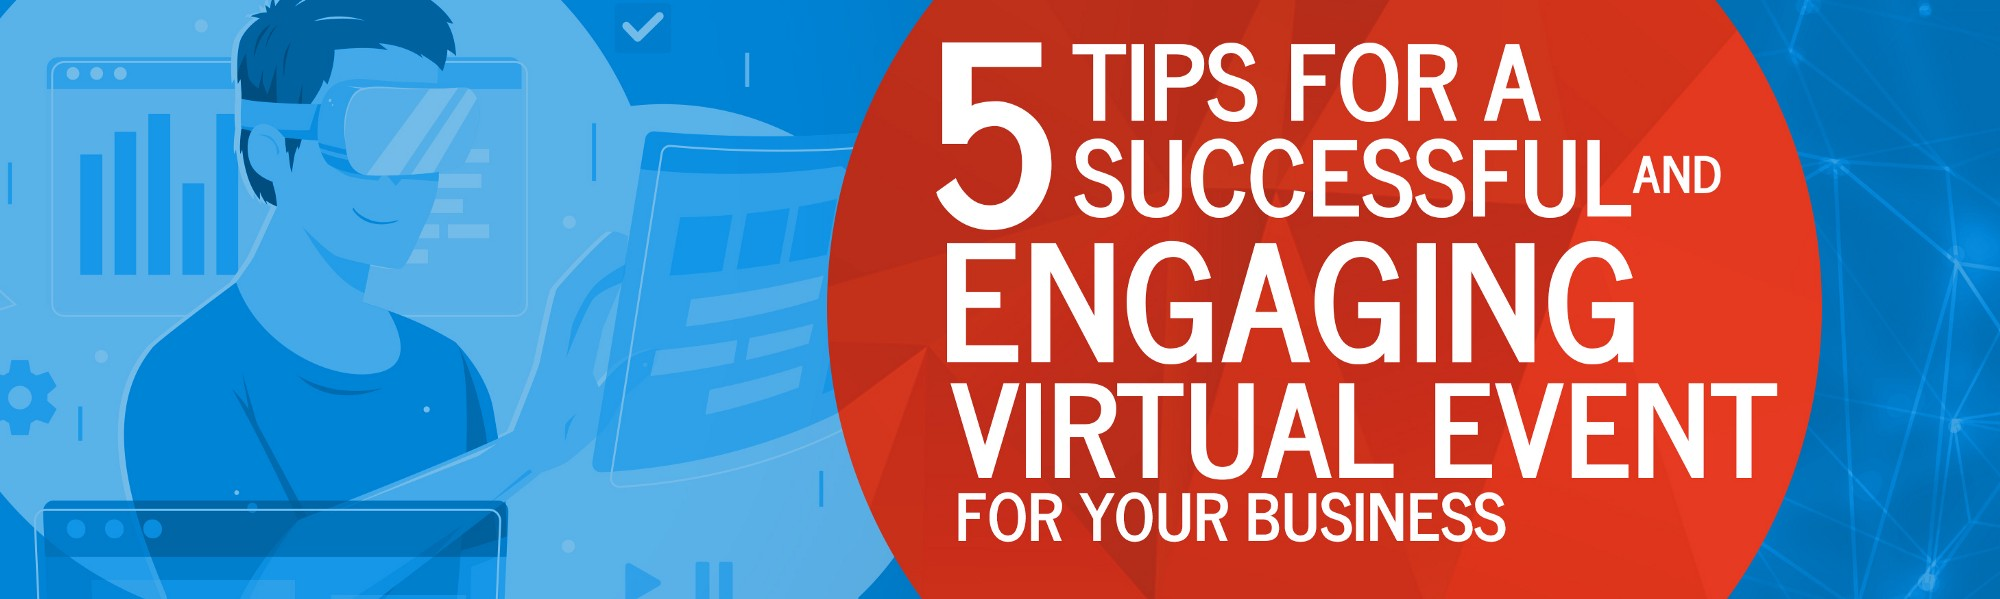 5 Tips for a Successful and Engaging Virtual Event for Your Business